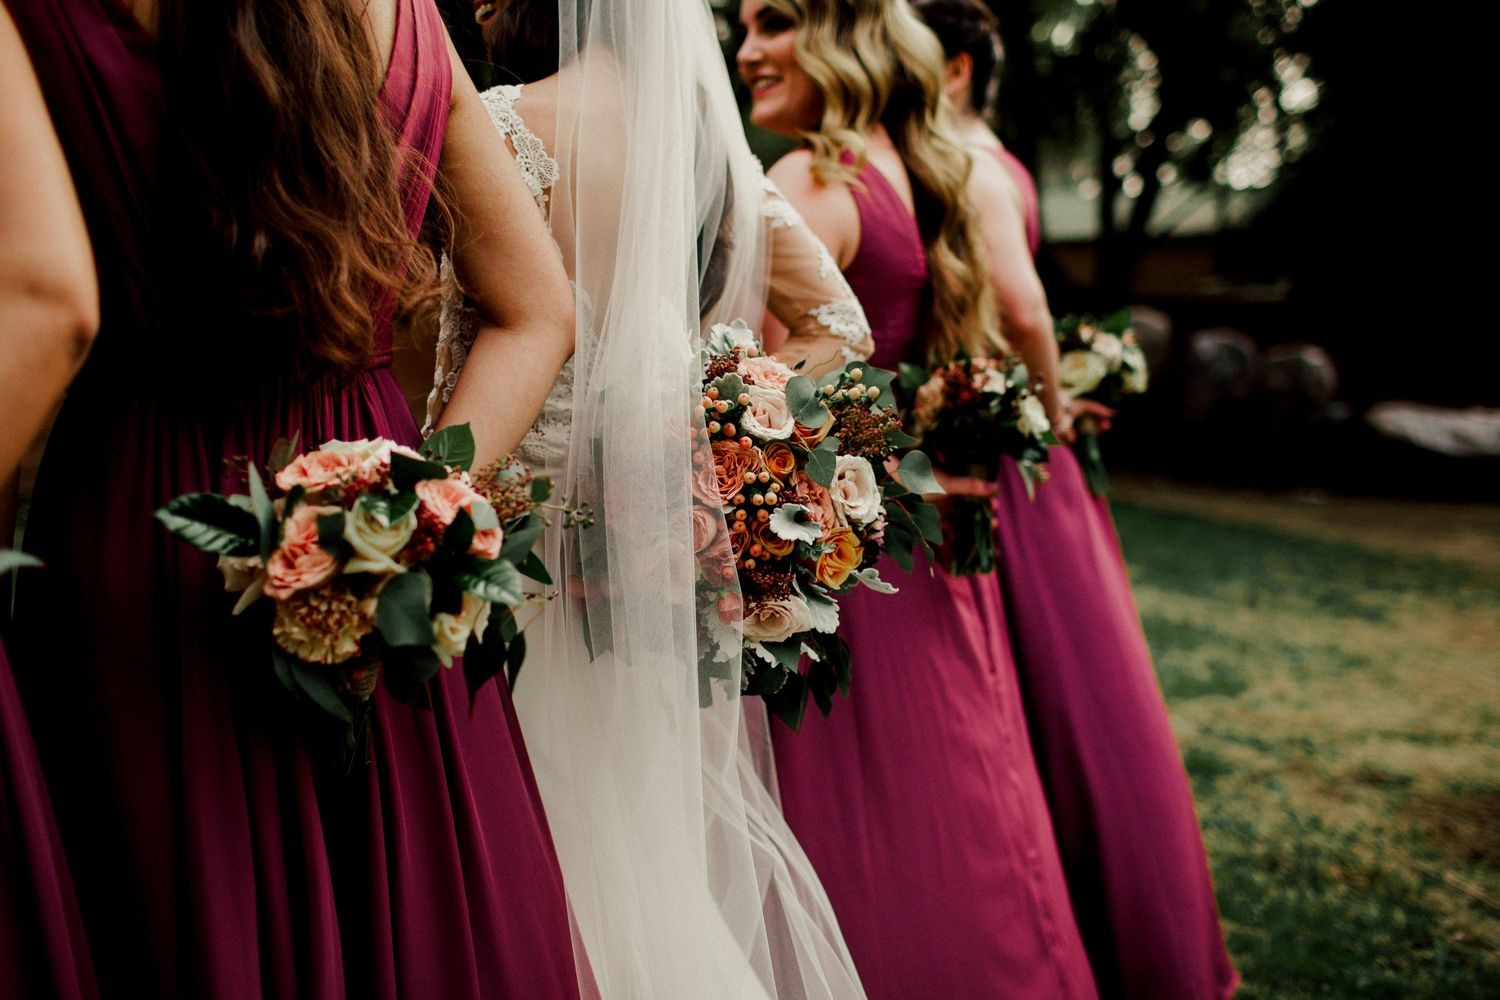 bridal party holding bouquet's behind back